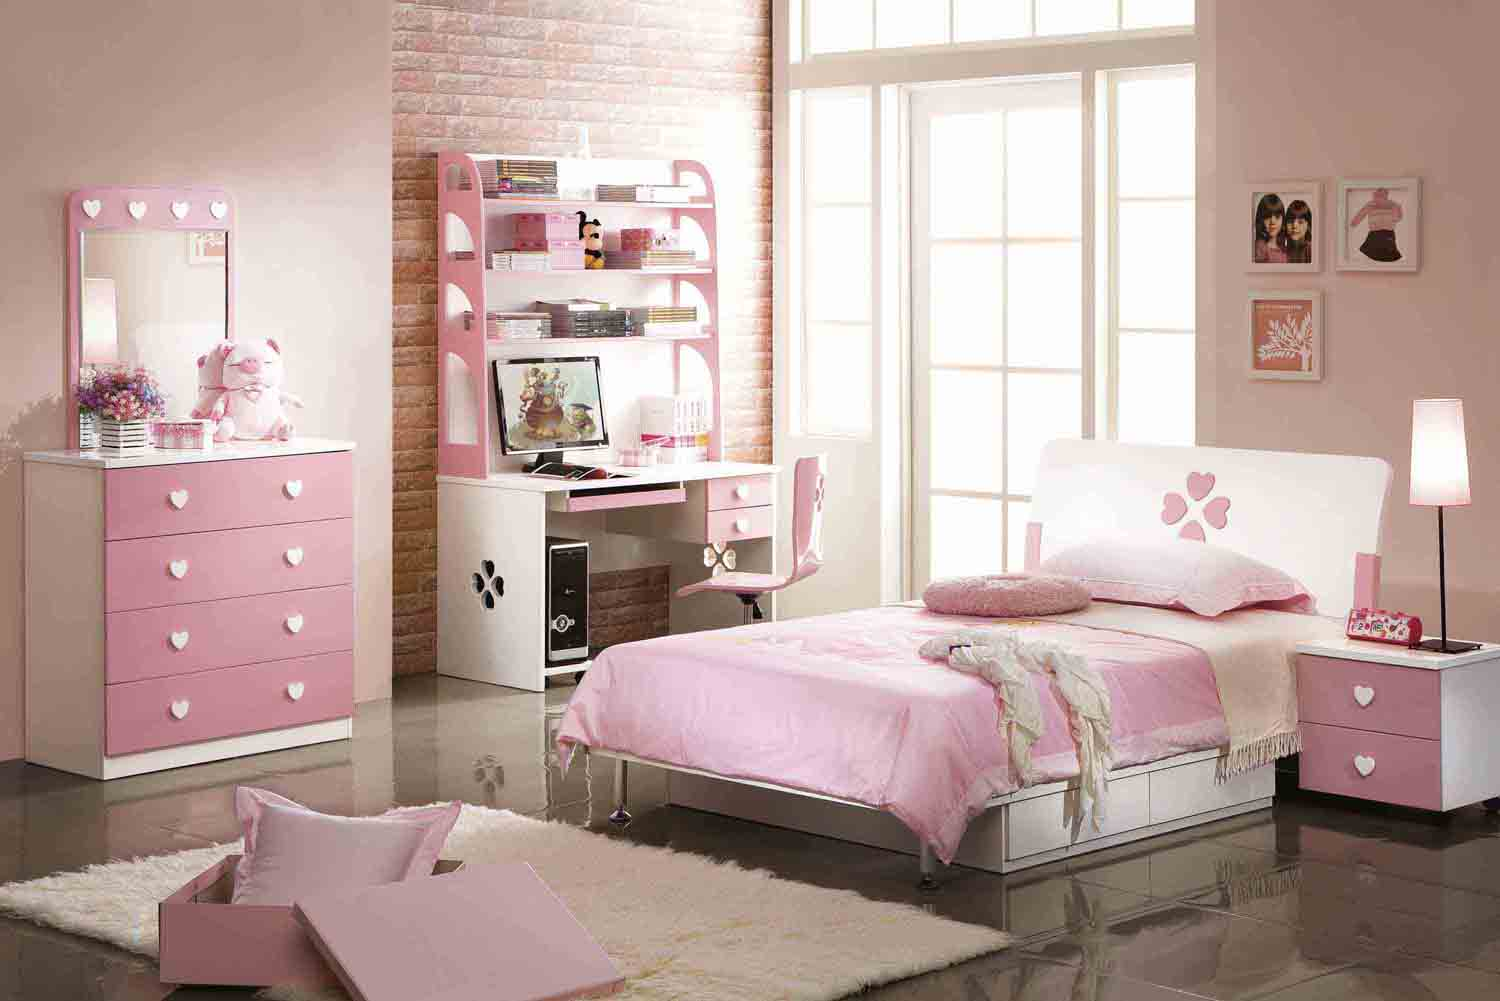 bedroom ideas pink black and pink bedroom ideas 14 cool hd wallpaper 10491